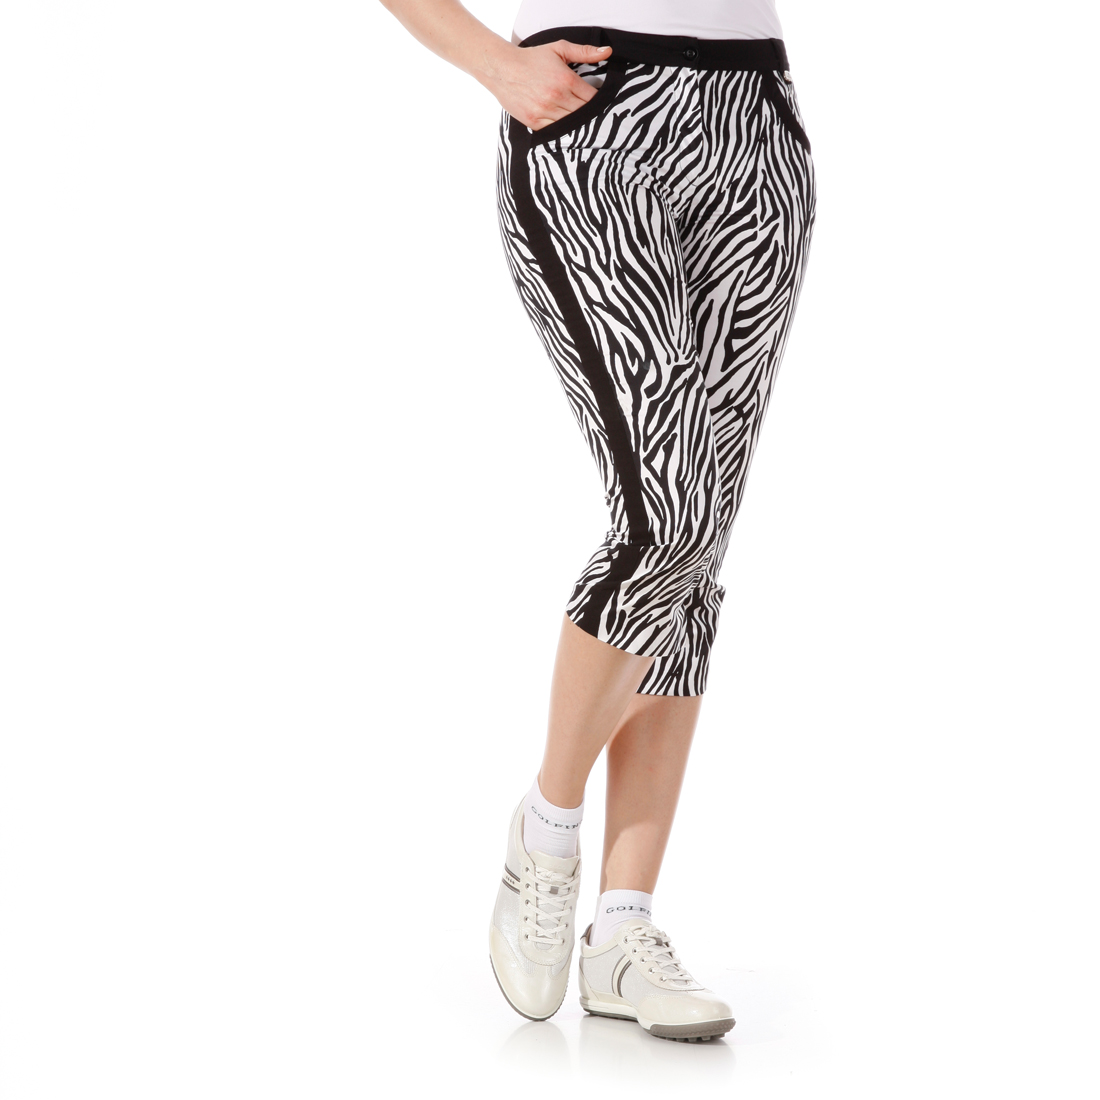 Stretch-Caprihose mit Zebraprint